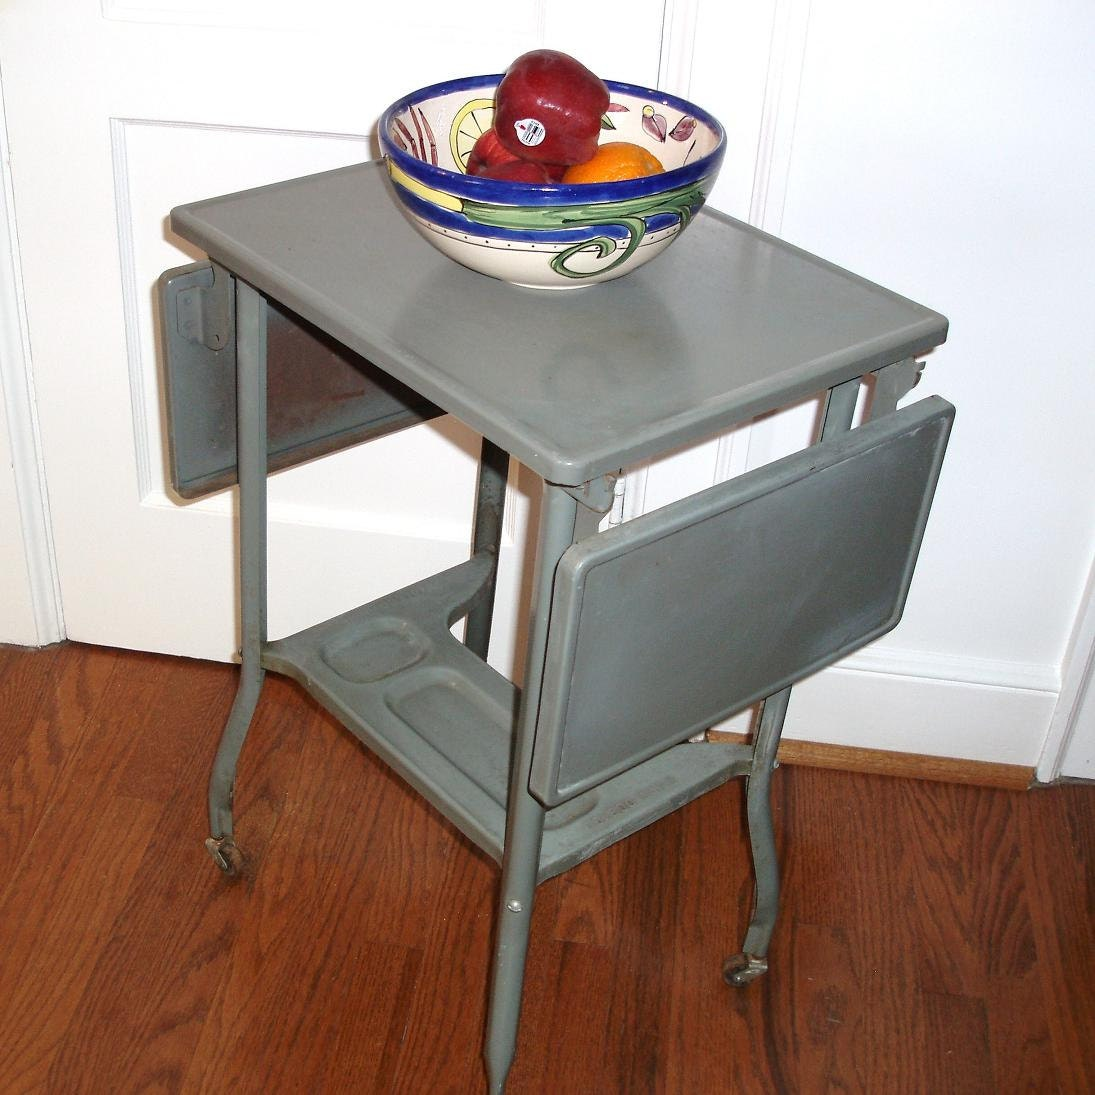 Vintage Metal Typewriter Table Industrial Rolling by WhimzyThyme